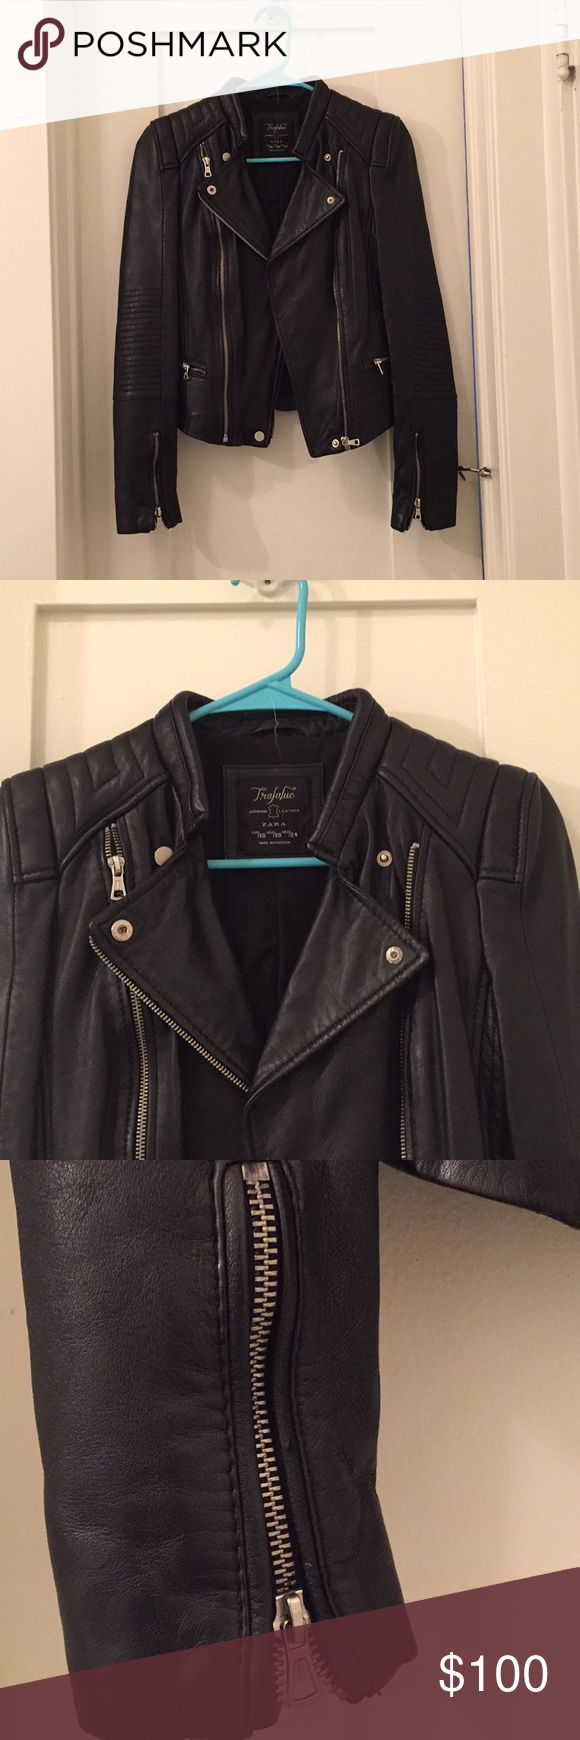 "NWOT Zara Real Leather Jacket So cool!!! Never been worn!! New without tags. No flaws! I purchased this and took the tags off but I've never even worn it!!! It's just been in my closet and now I'm downsizing so that's why I'm selling. As seen on Kendall Jenner! Awesome real leather jacket from Zara.  Such a cool style. Measurements are: From shoulder to shoulder = 14.5"" Bust= 30"" Length= 20"" Sleeve length= 23"" Price is firm Zara Jackets & Coats"